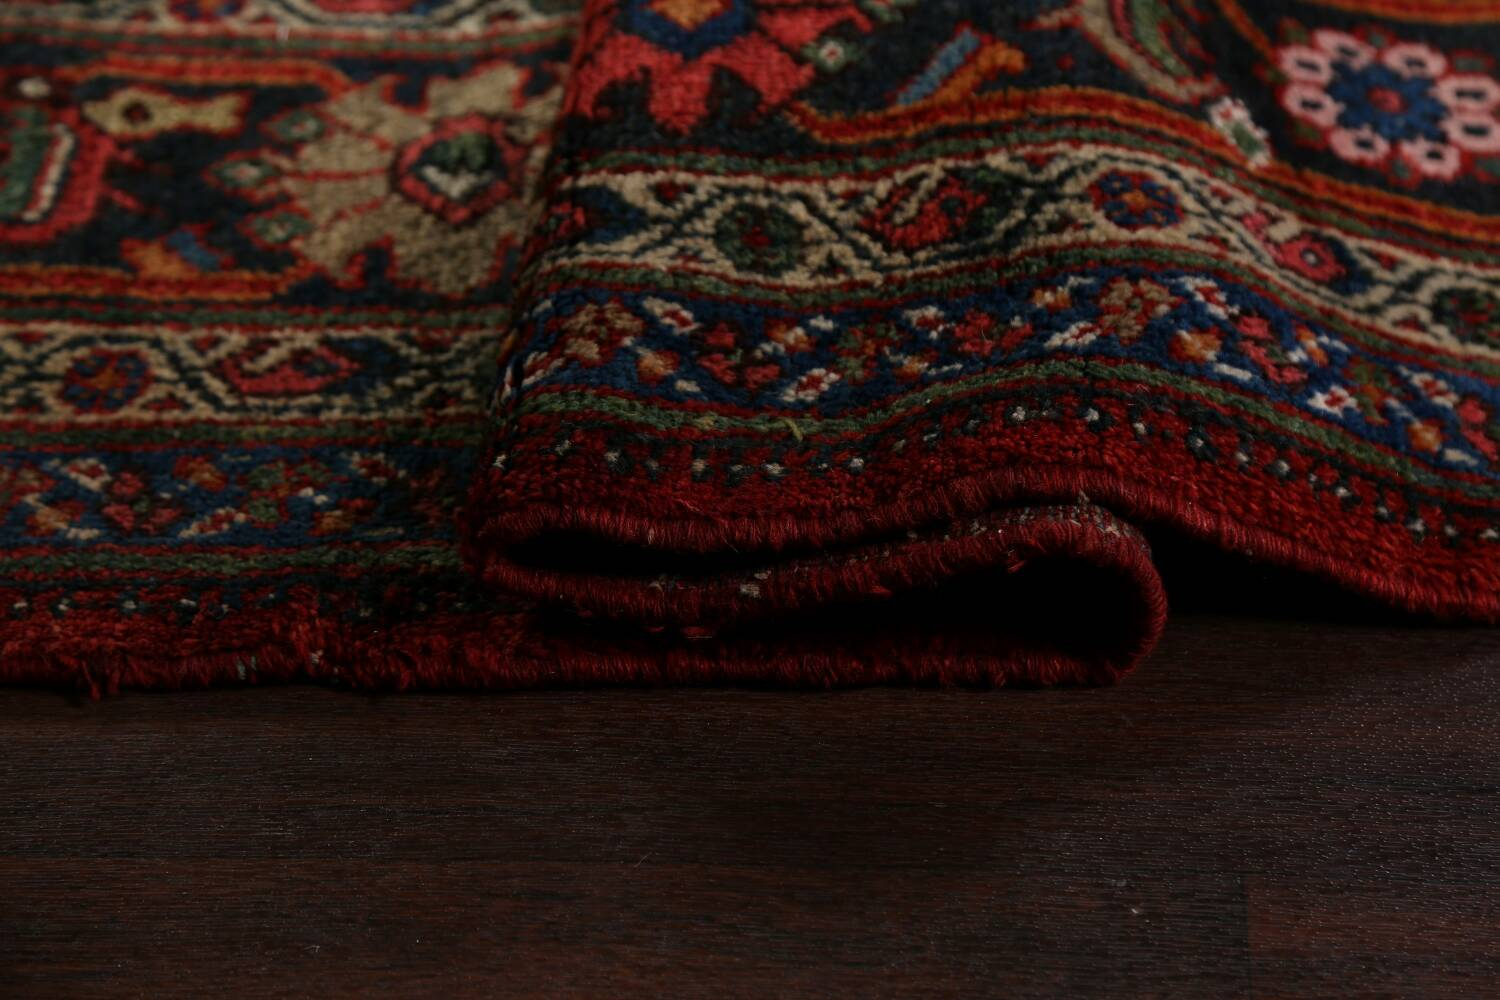 Antique 100% Vegetable Dye Sultanabad Persian Area Rug 12x17 image 15